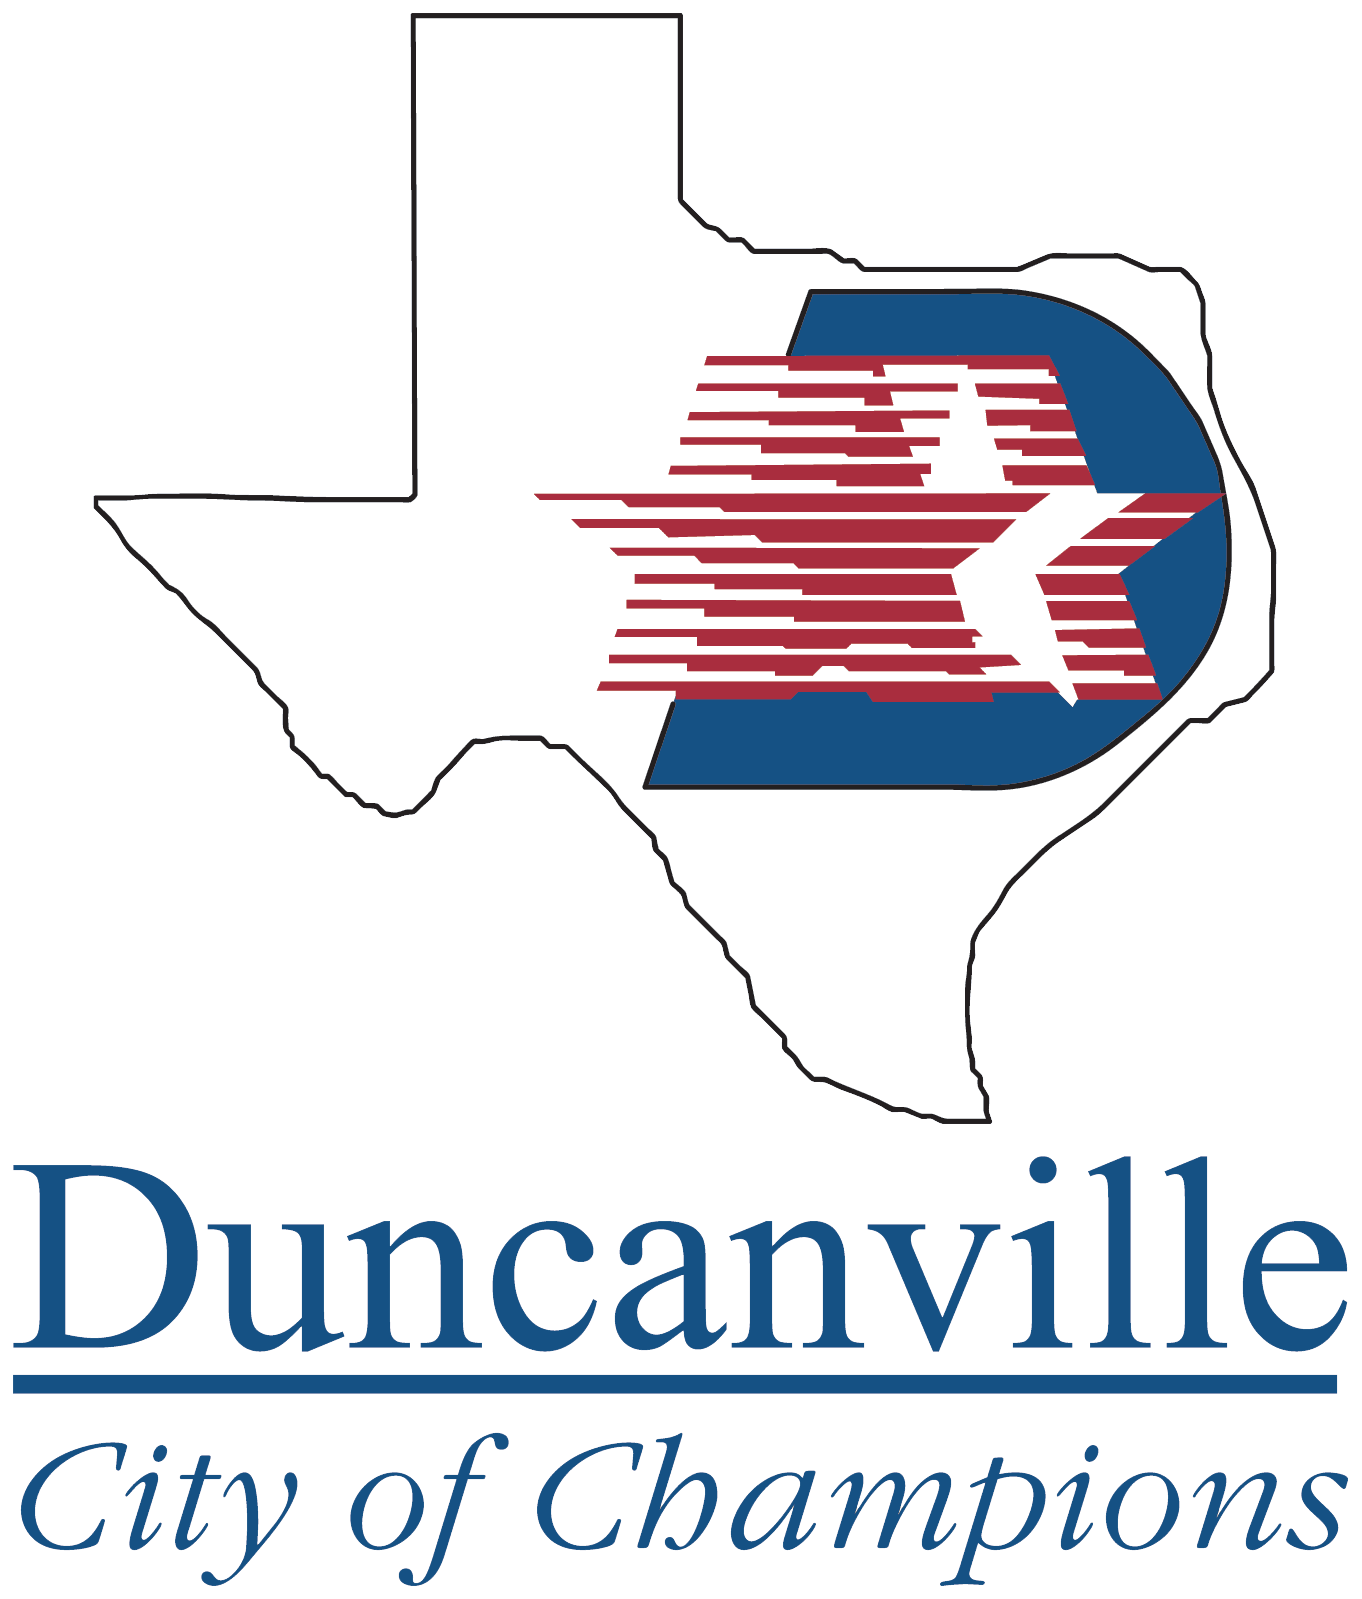 Duncanville Opens in new window